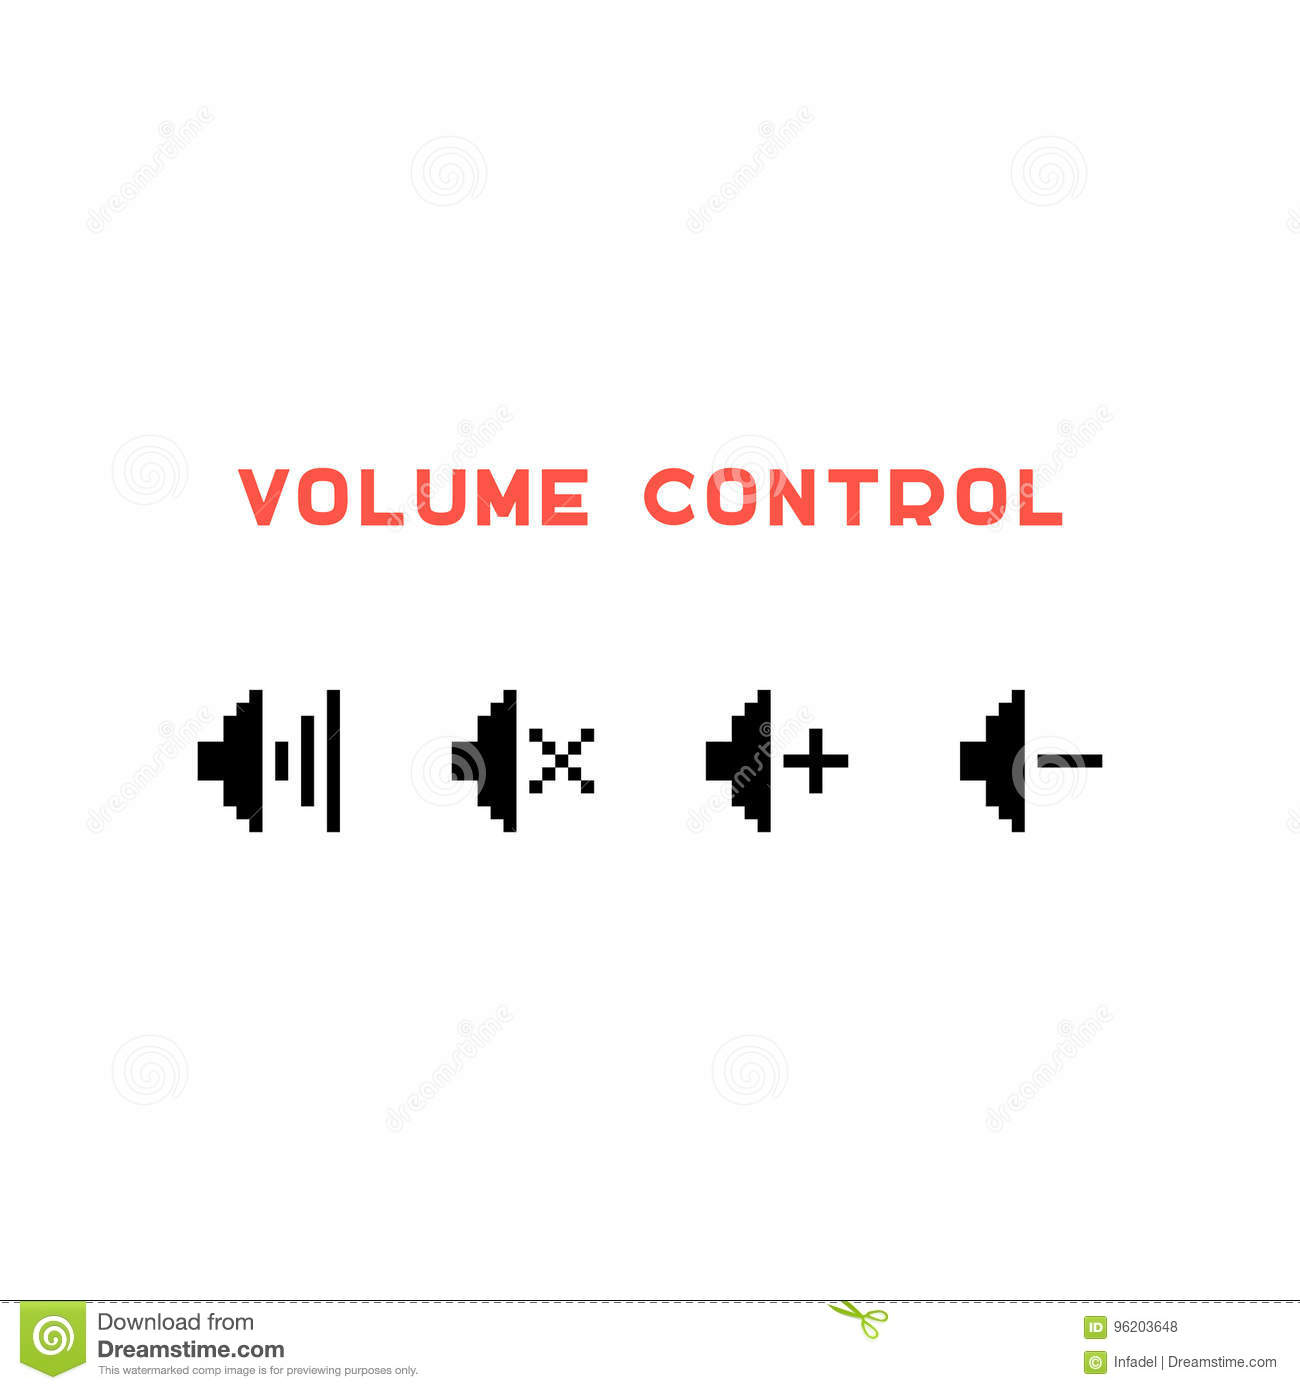 Volume Control Set In Pixel Art Stock Vector - Illustration of noise